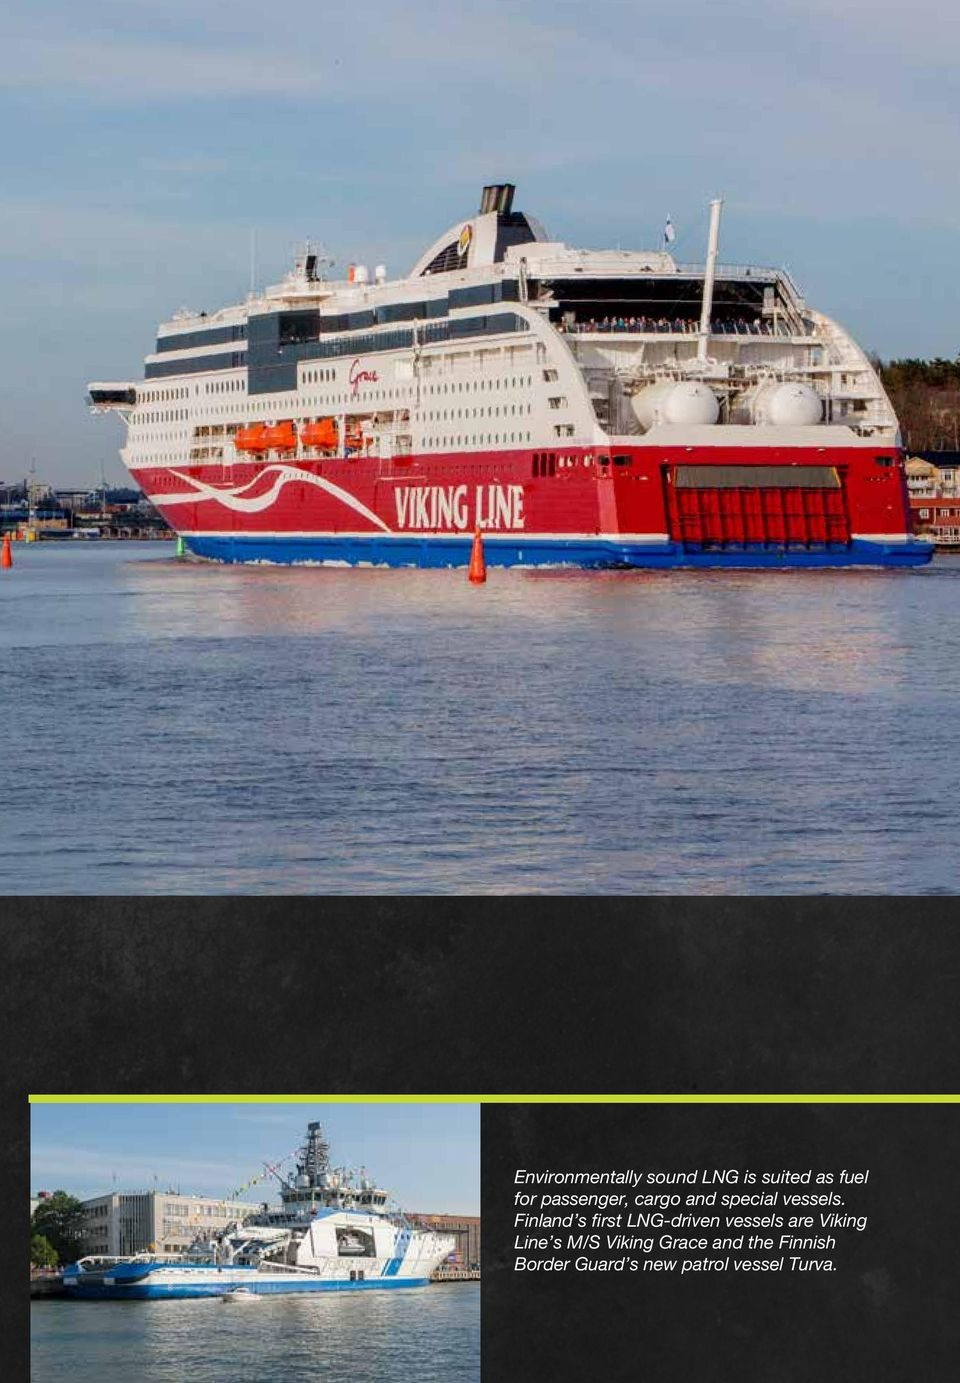 Finland s first LNG-driven vessels are Viking Line s